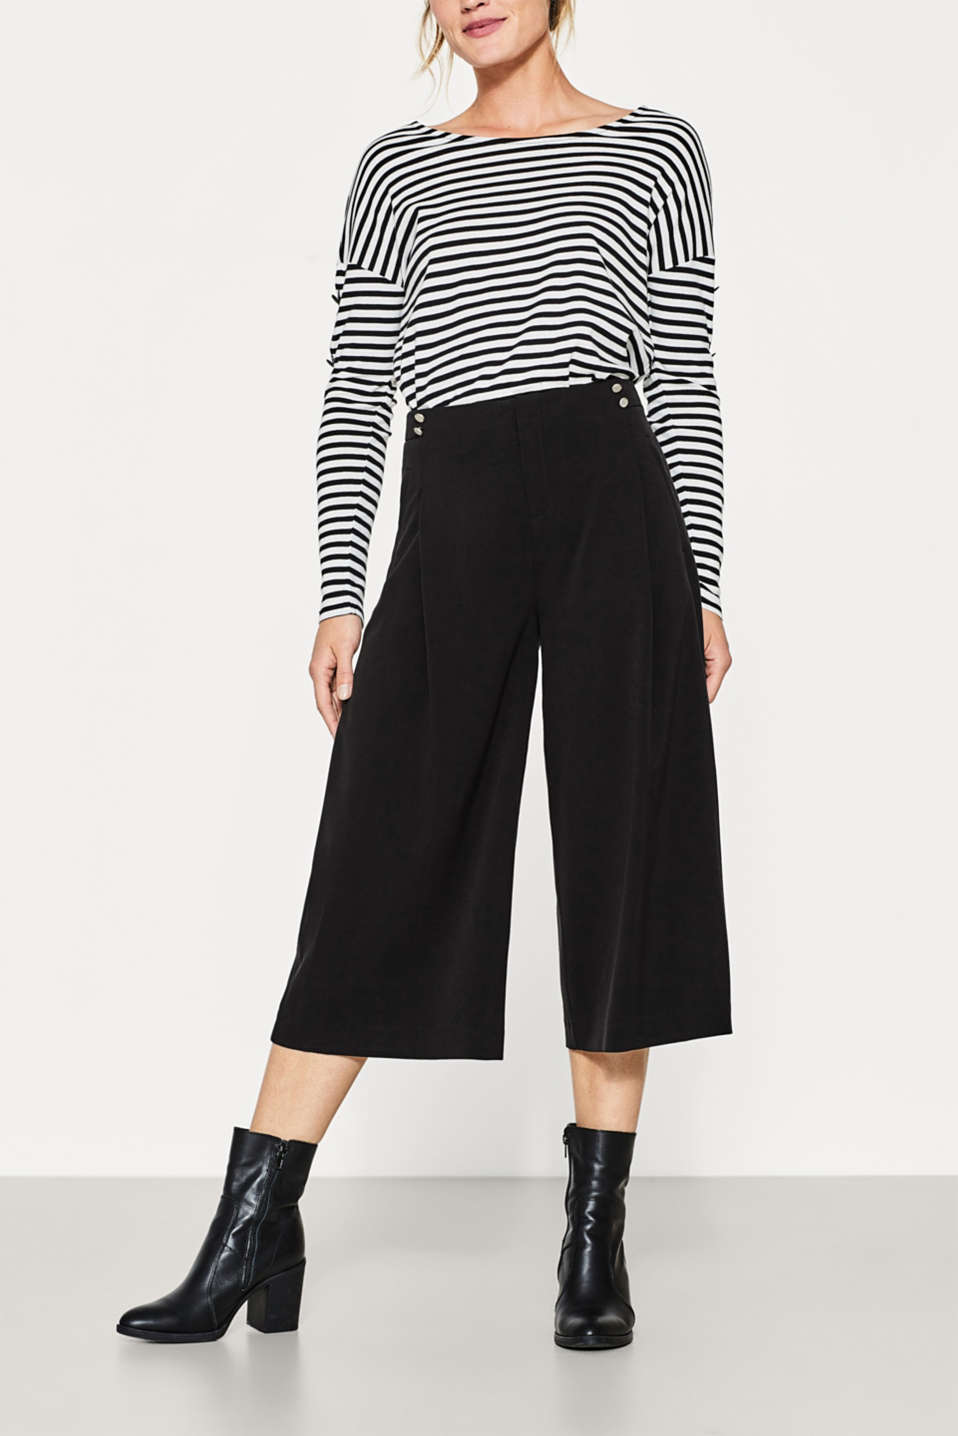 Esprit - Flowing culottes with waistband buttons